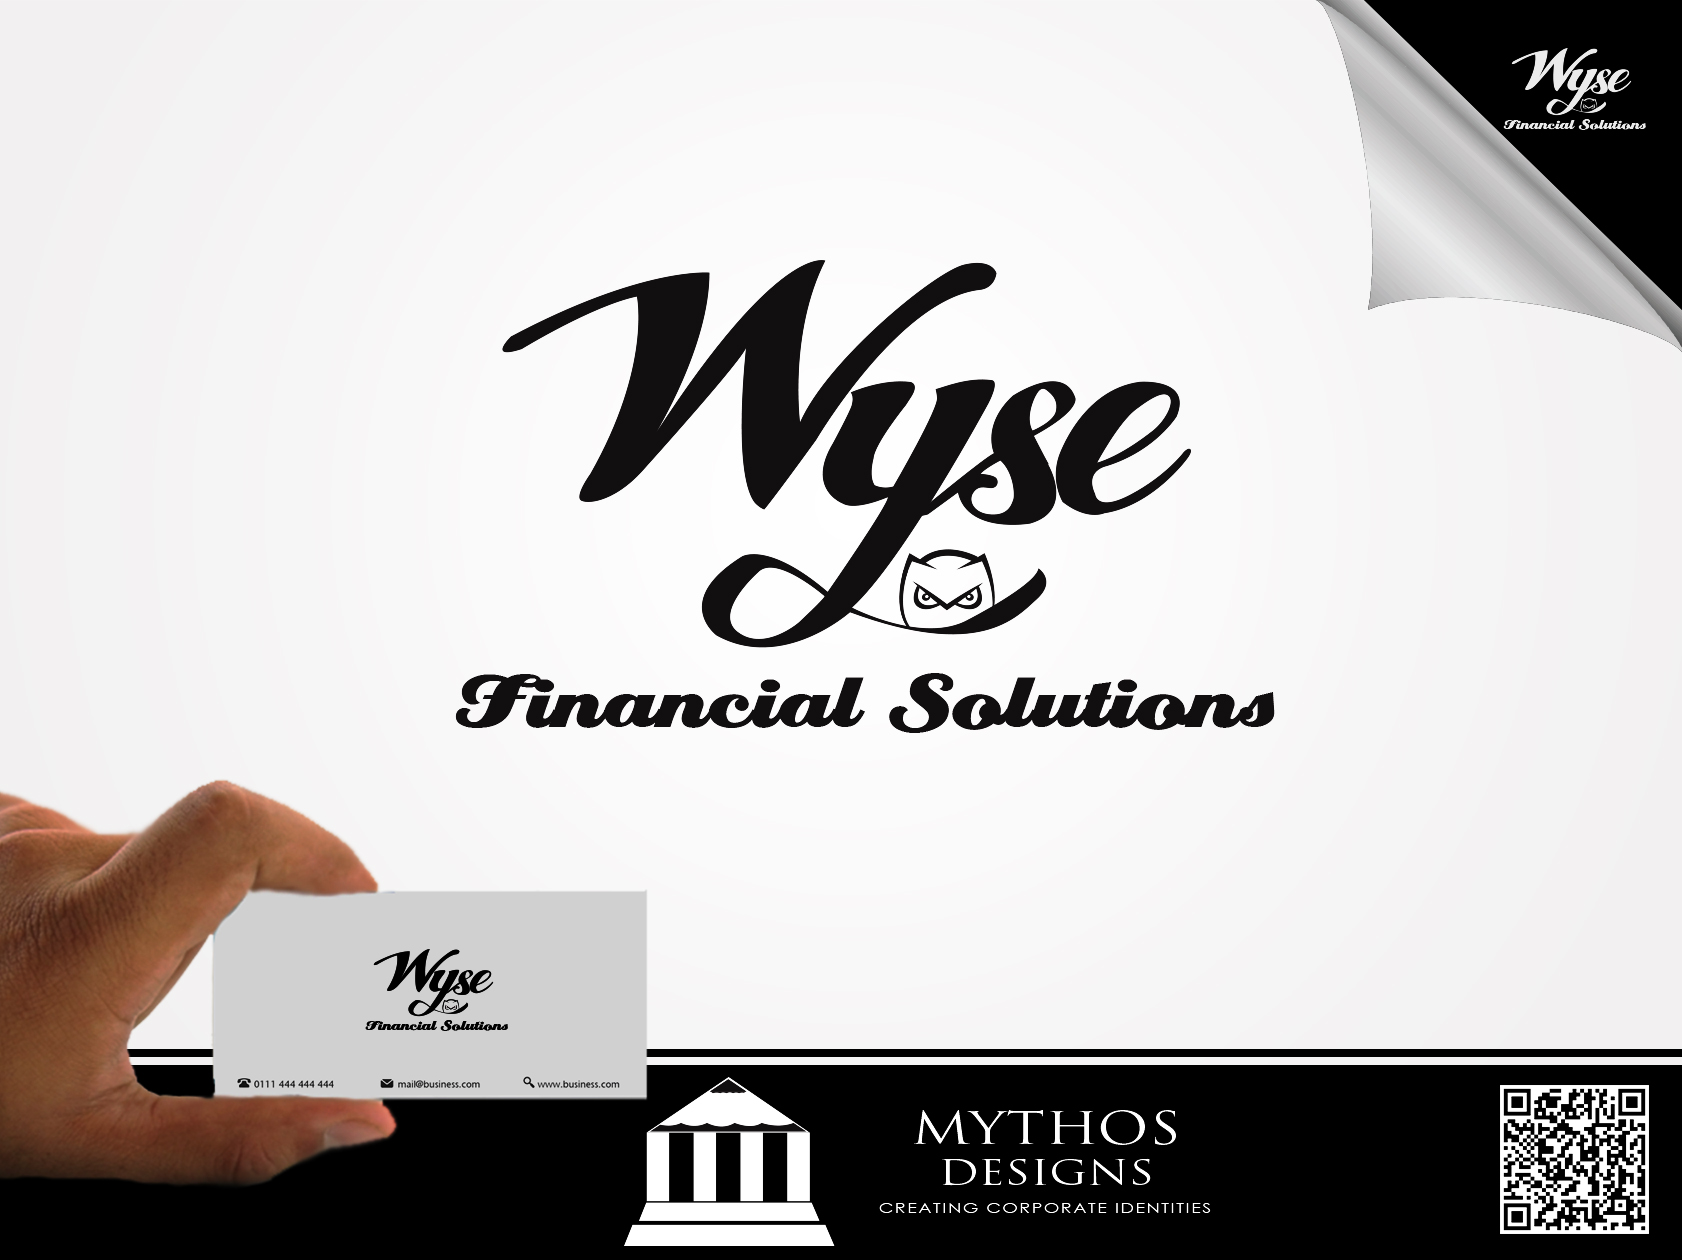 Logo Design by Mythos Designs - Entry No. 59 in the Logo Design Contest Fun Logo Design for Wyse Financial Solutions.